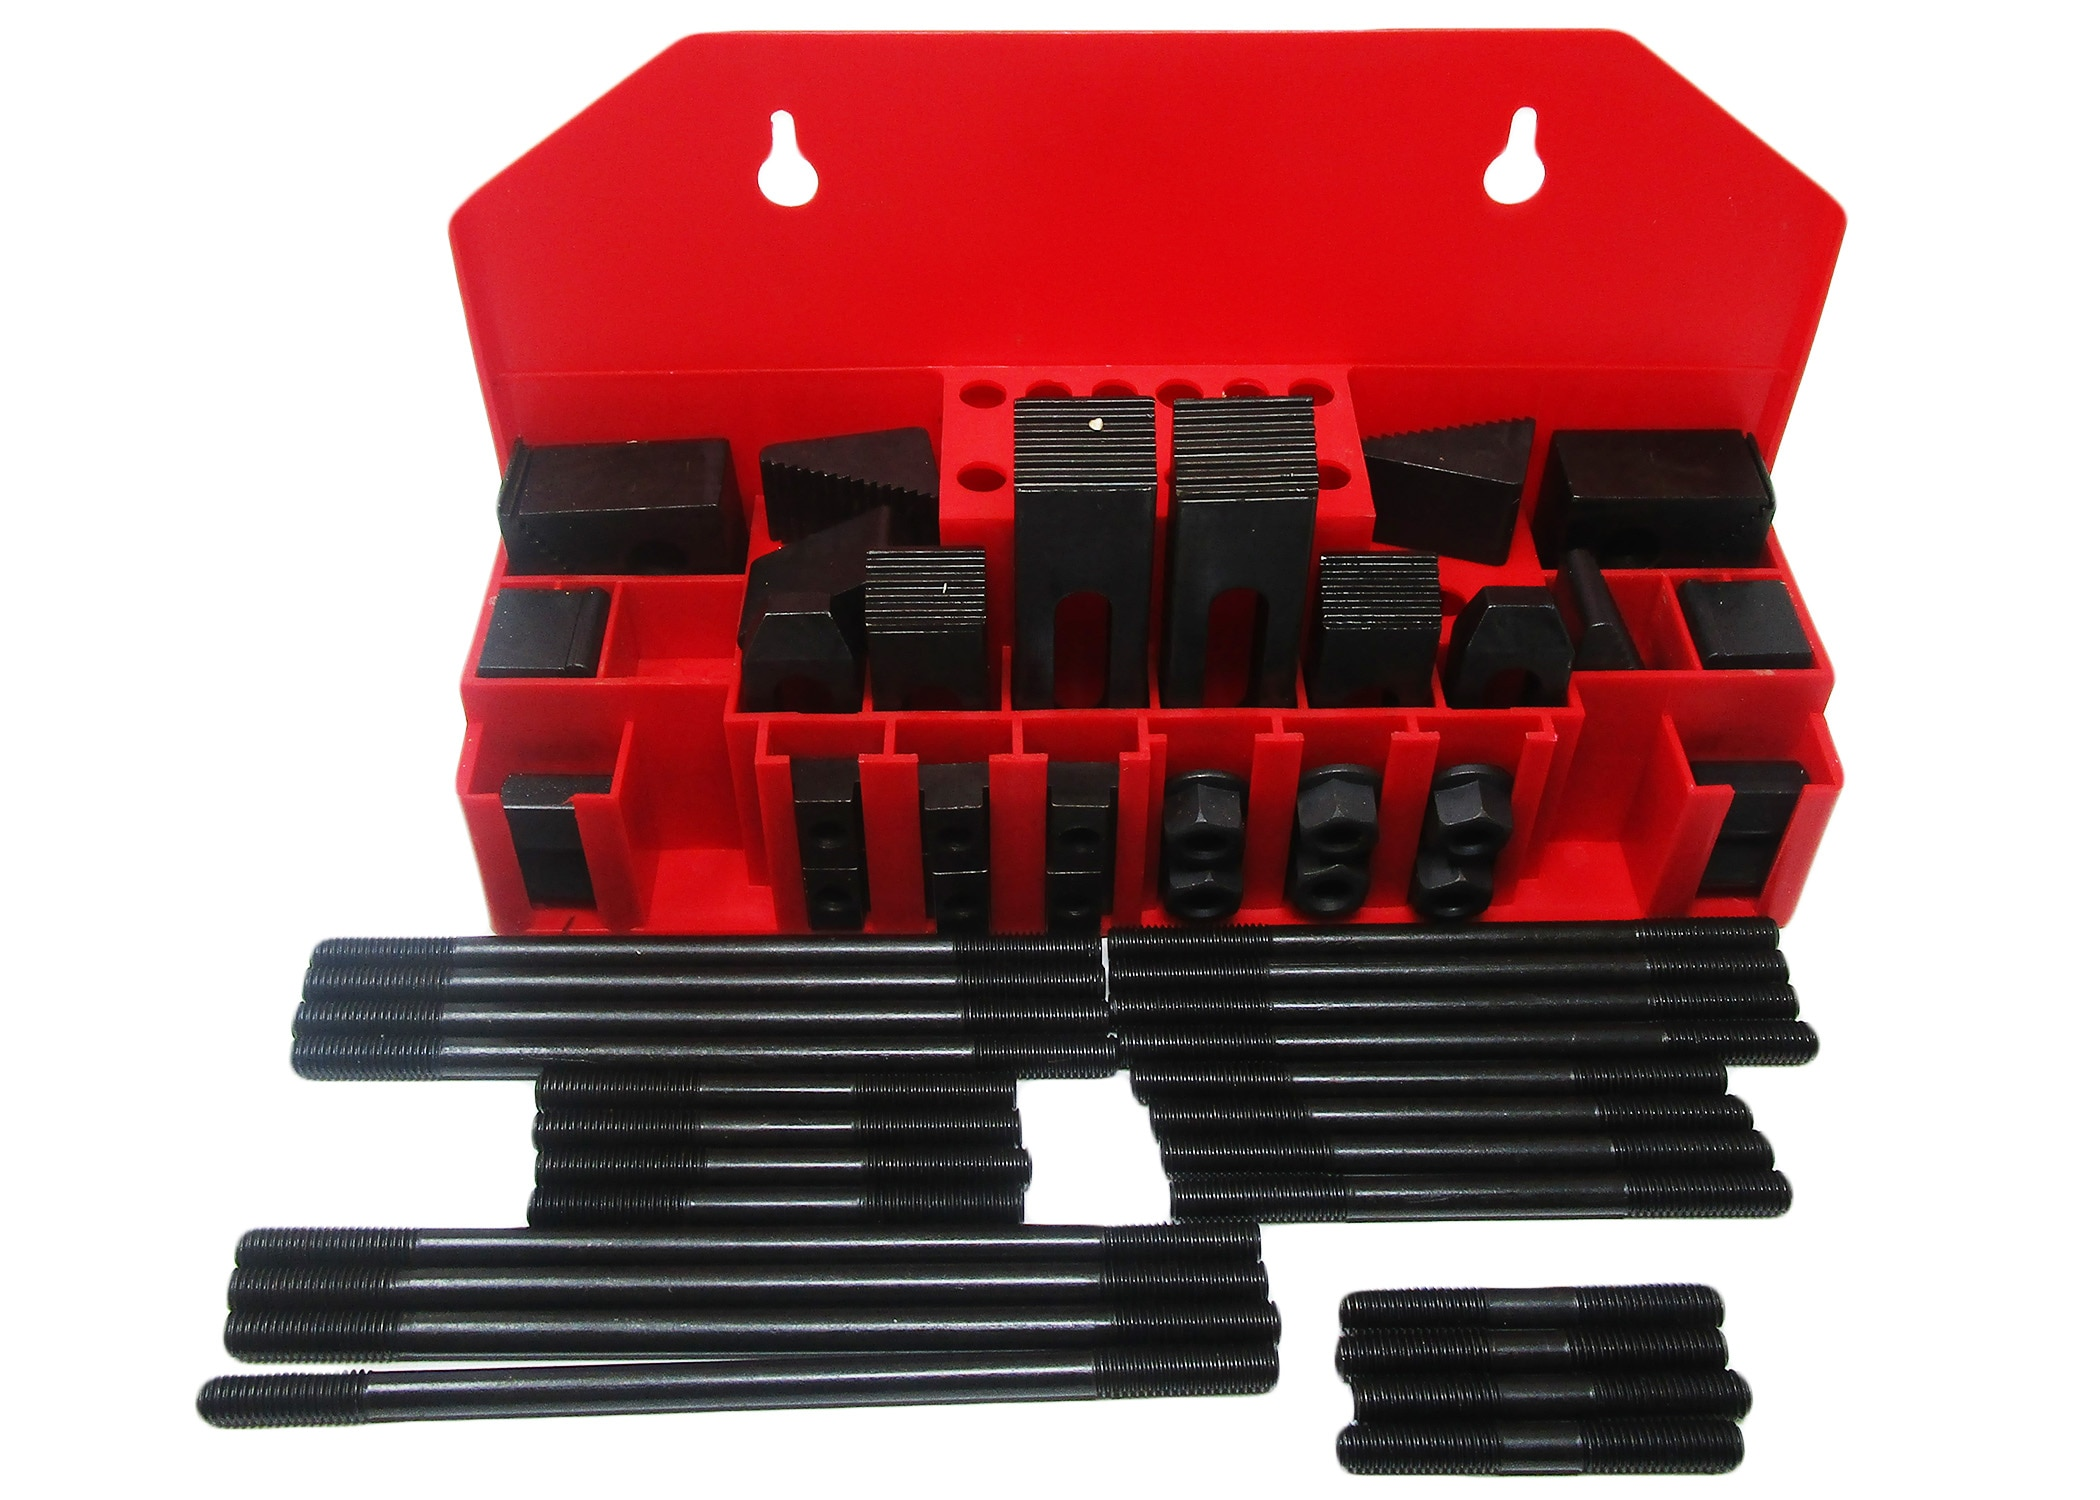 JET —  52 Piece CK38 Clamping Kit for 1/2 in T-Slots